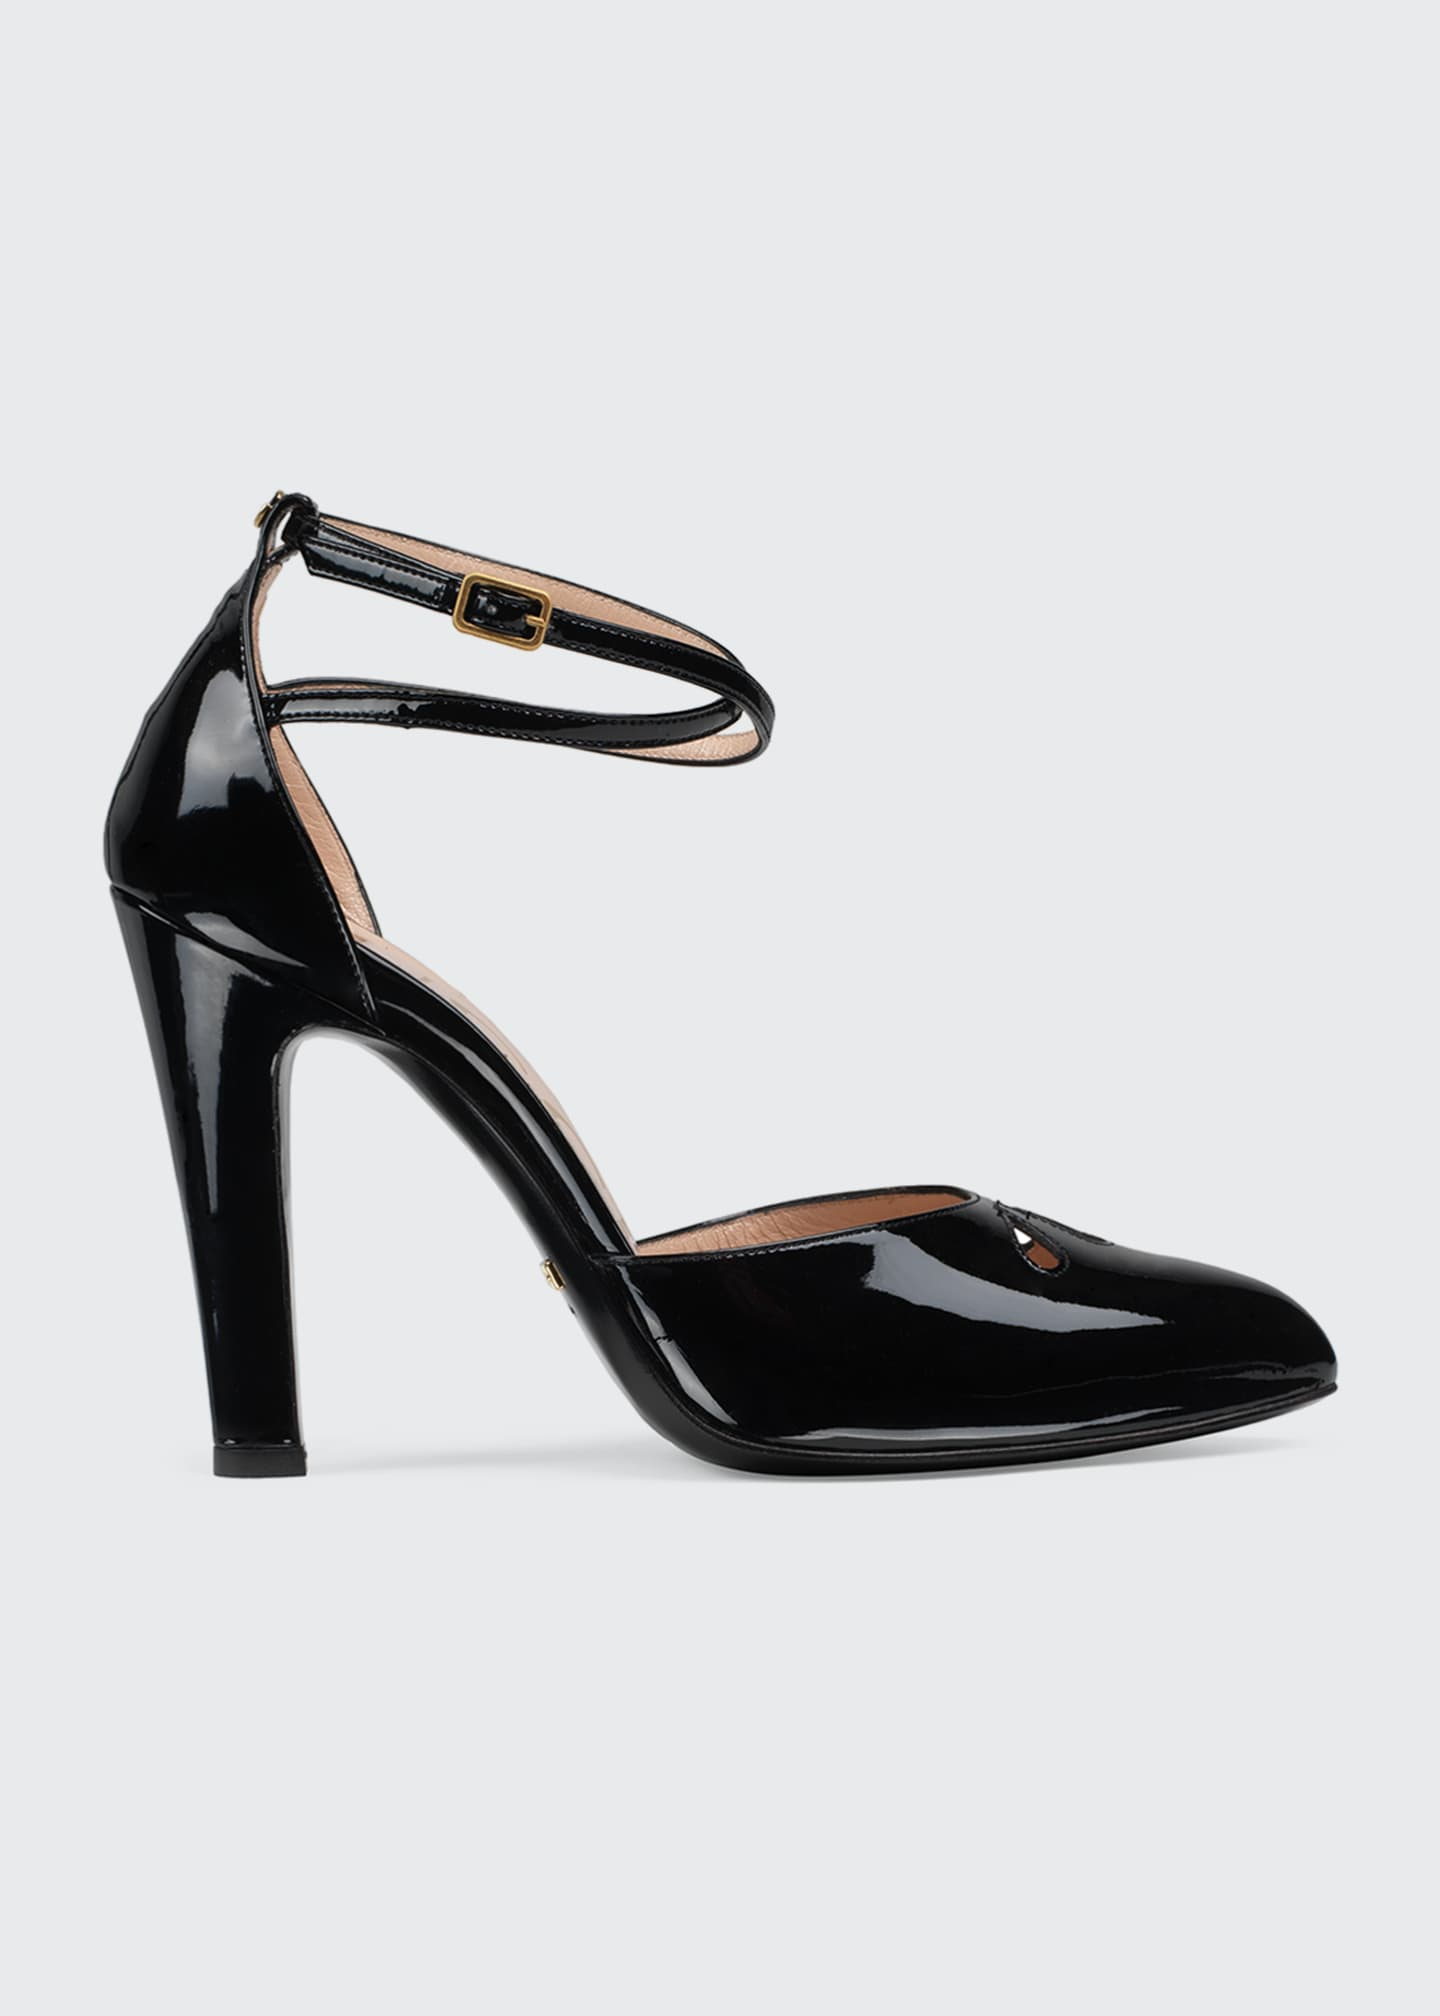 Gucci Indya 105mm Patent Ankle-Strap Pumps